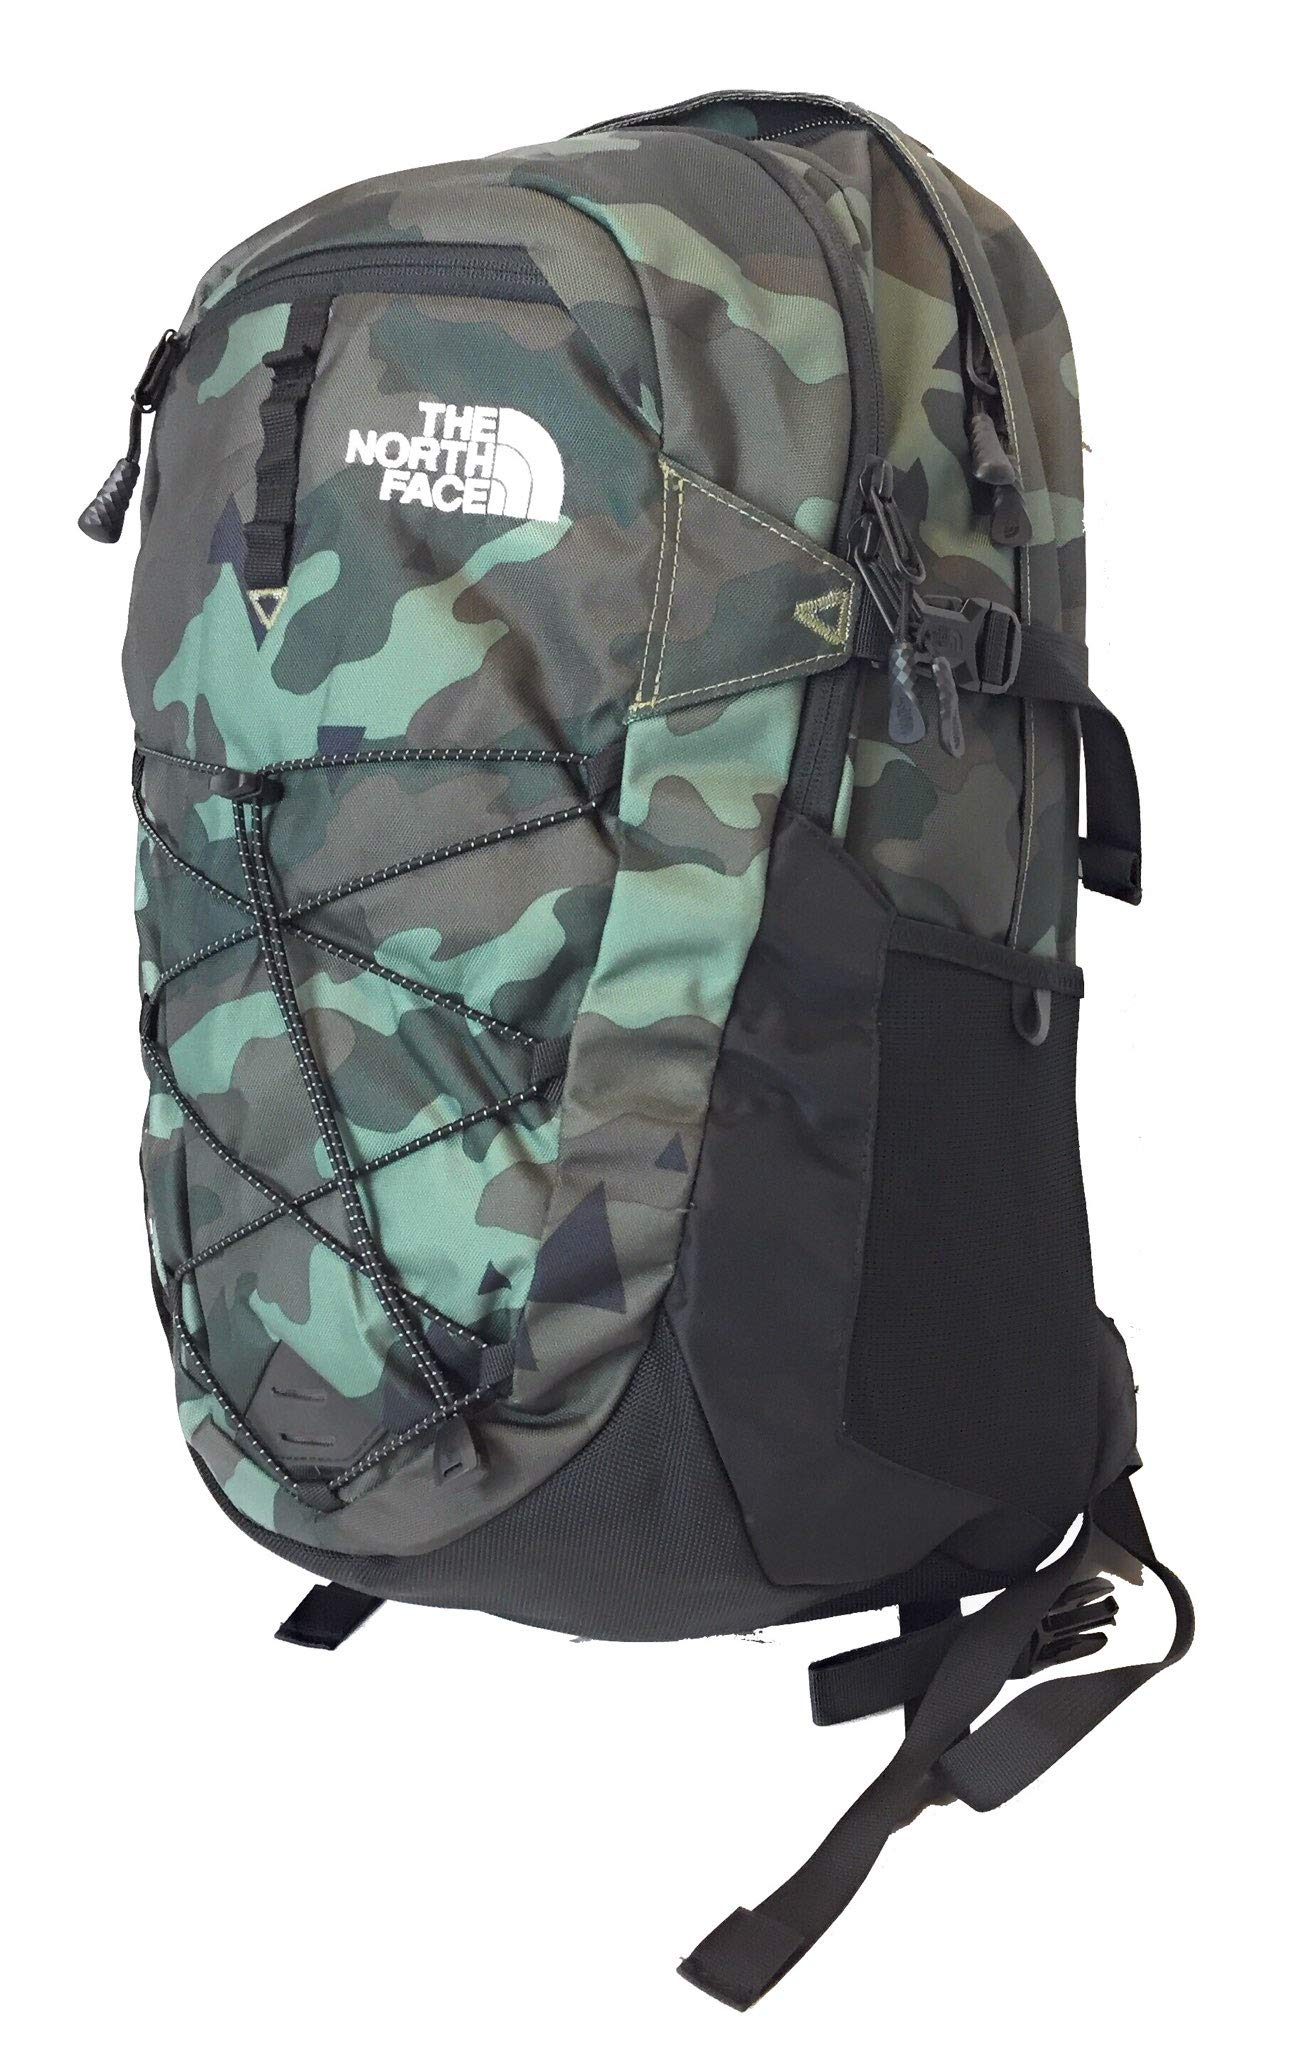 The North Face Borealis Unisex Outdoor Backpack, Olive Green Camo (Bright Olive Green Camo) by The North Face